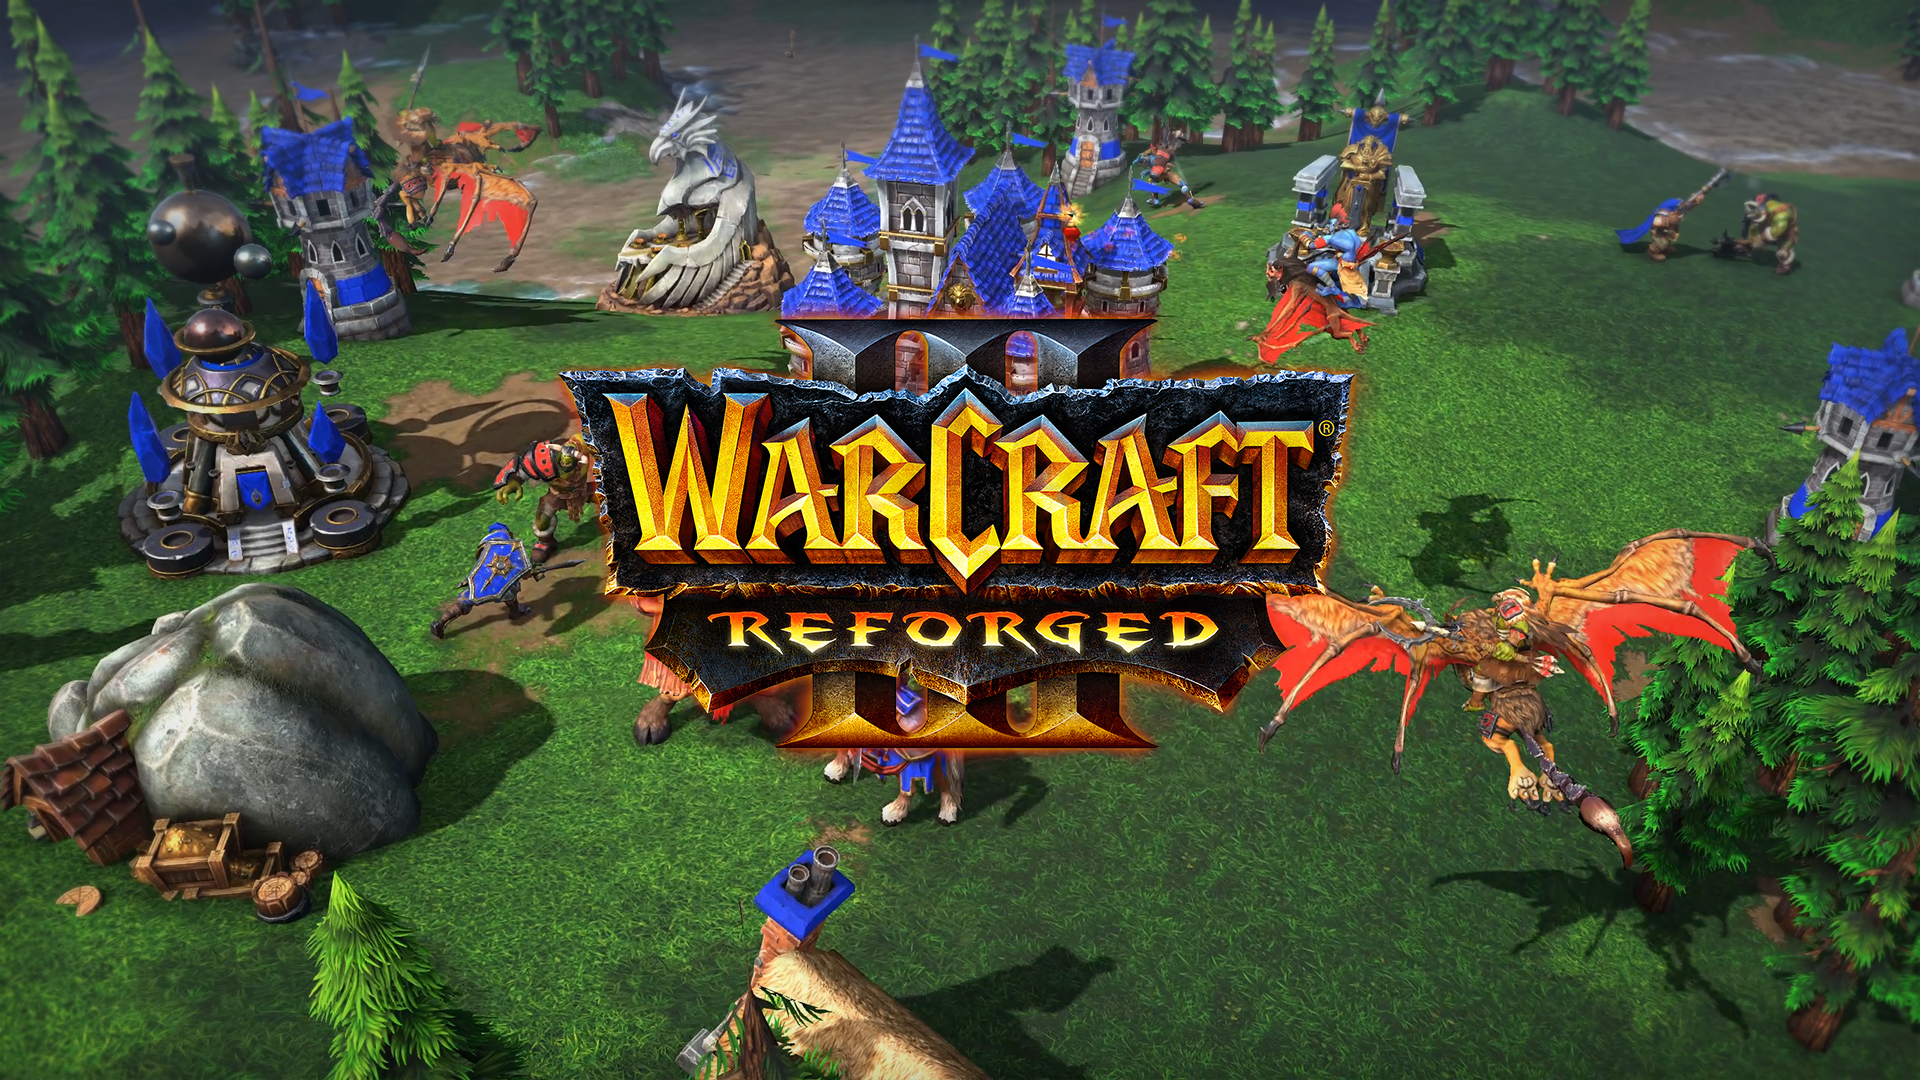 Warcraft III: Reforged Future Patches to Address Classic Mode Visuals  Issues, Add Online Features and More